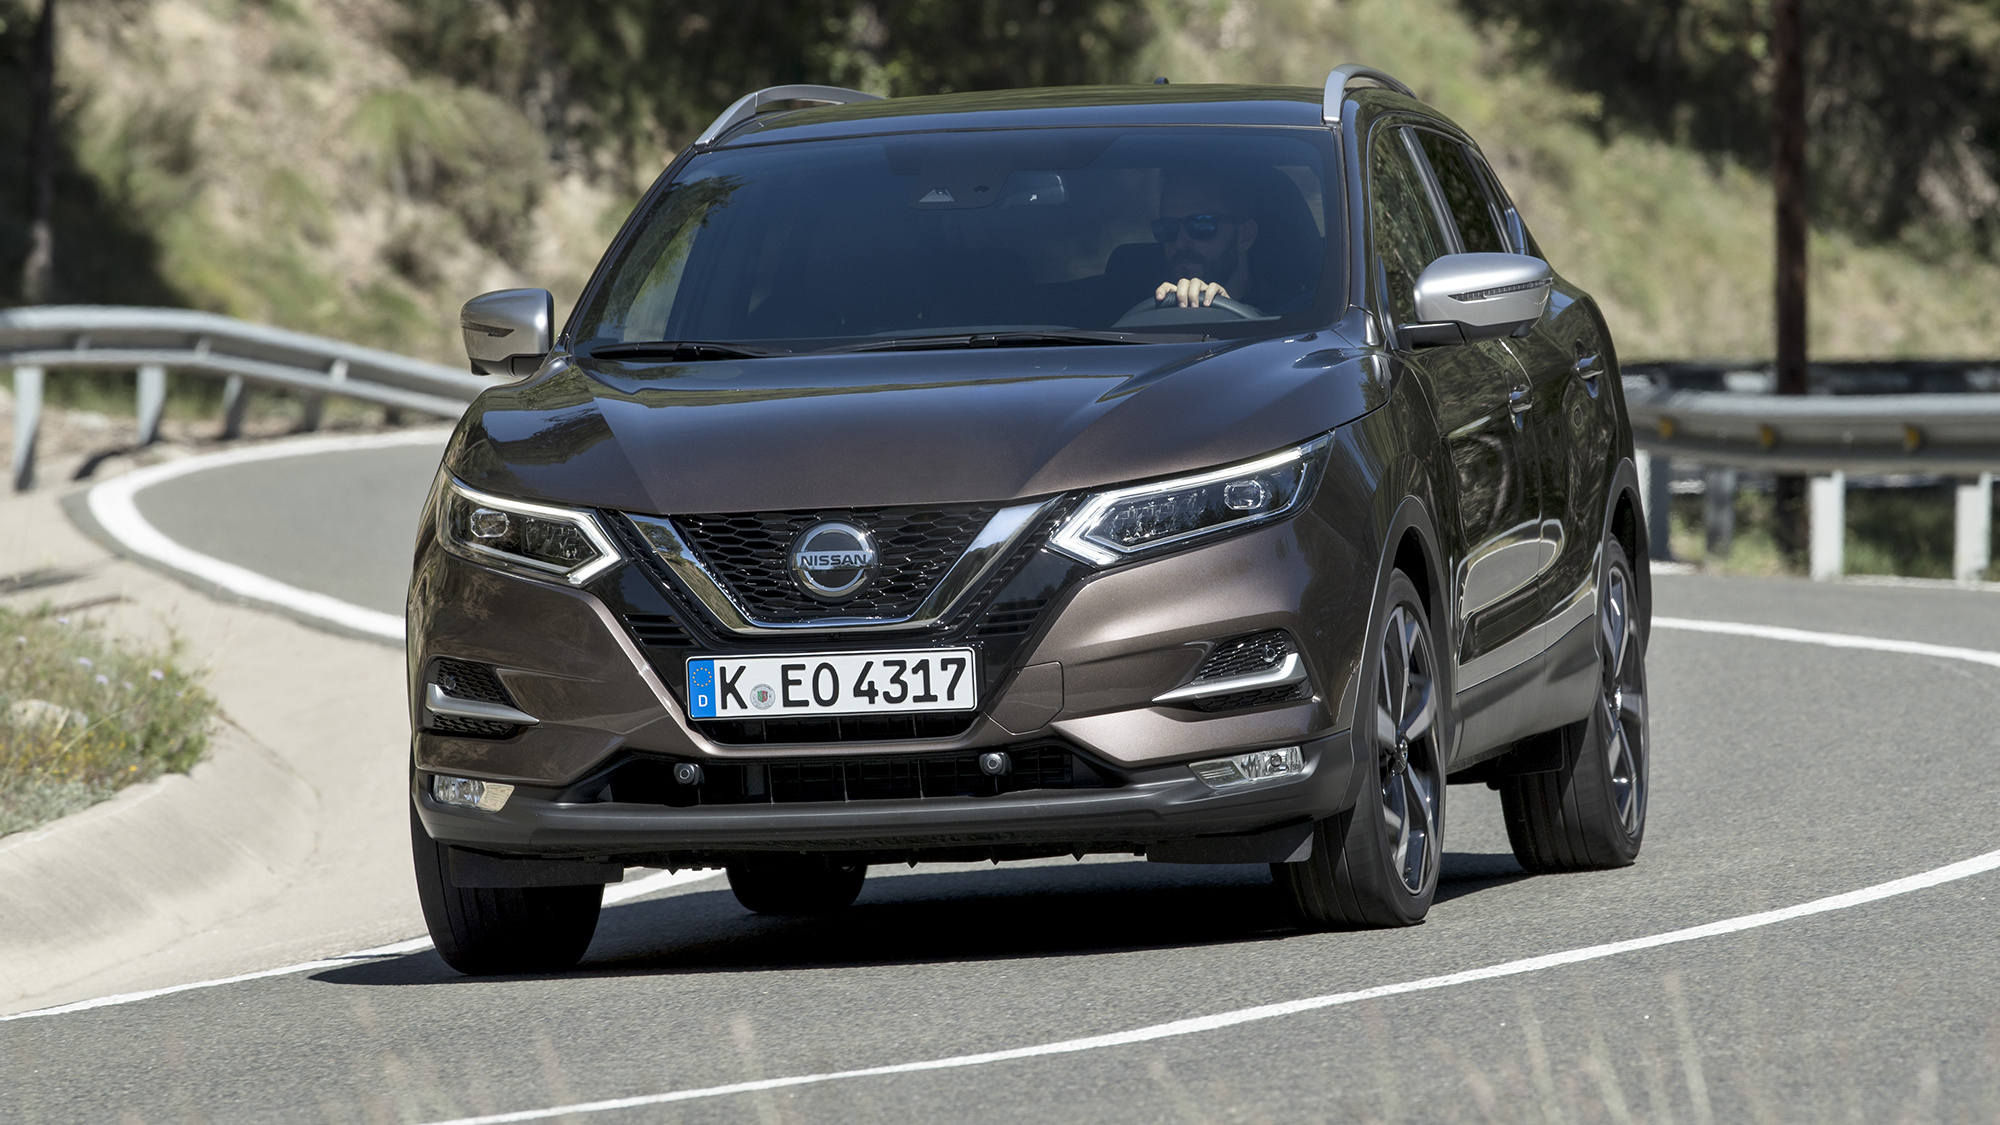 2019 Nissan Qashqai gets Apple CarPlay, Android Auto in